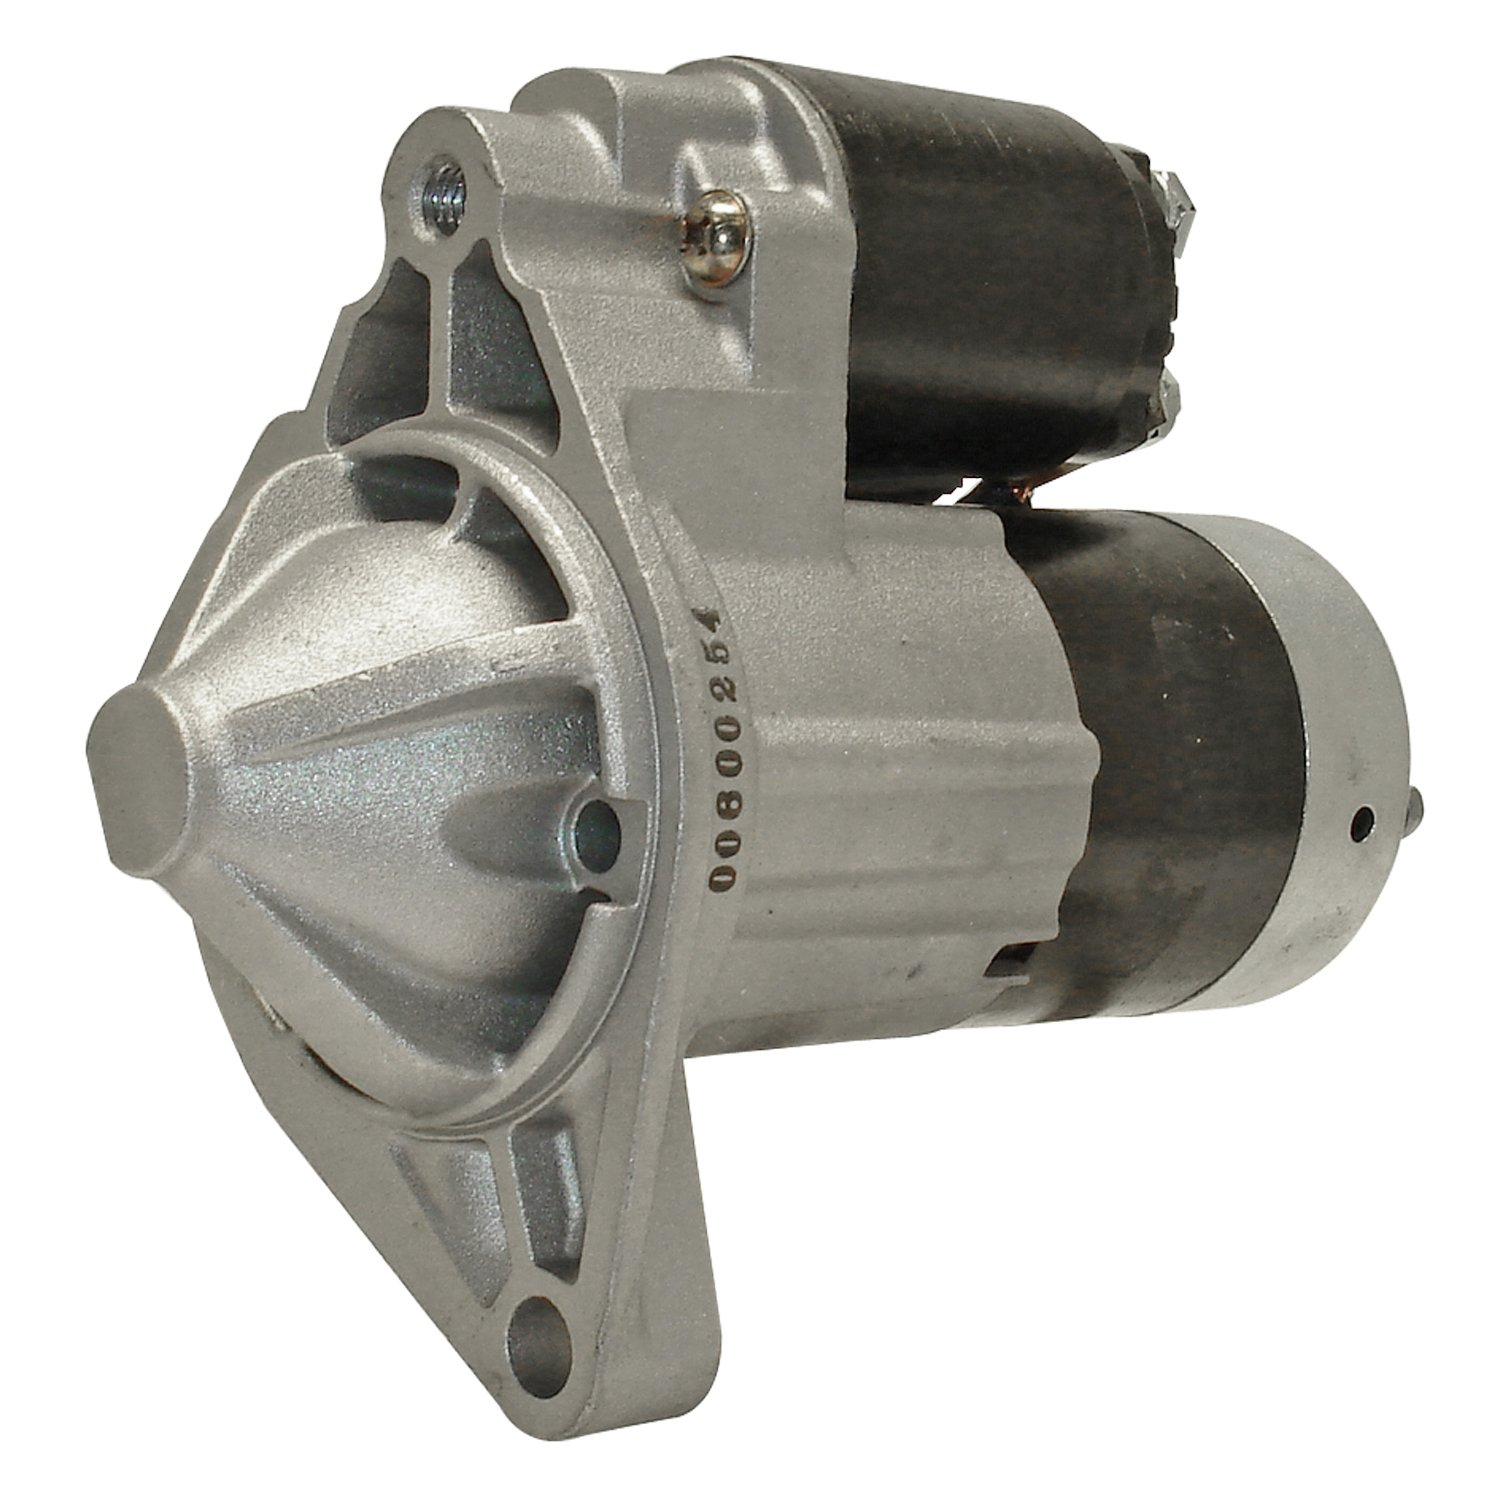 Remanufactured 336-1971-ACD ACDelco 336-1971 Professional Starter